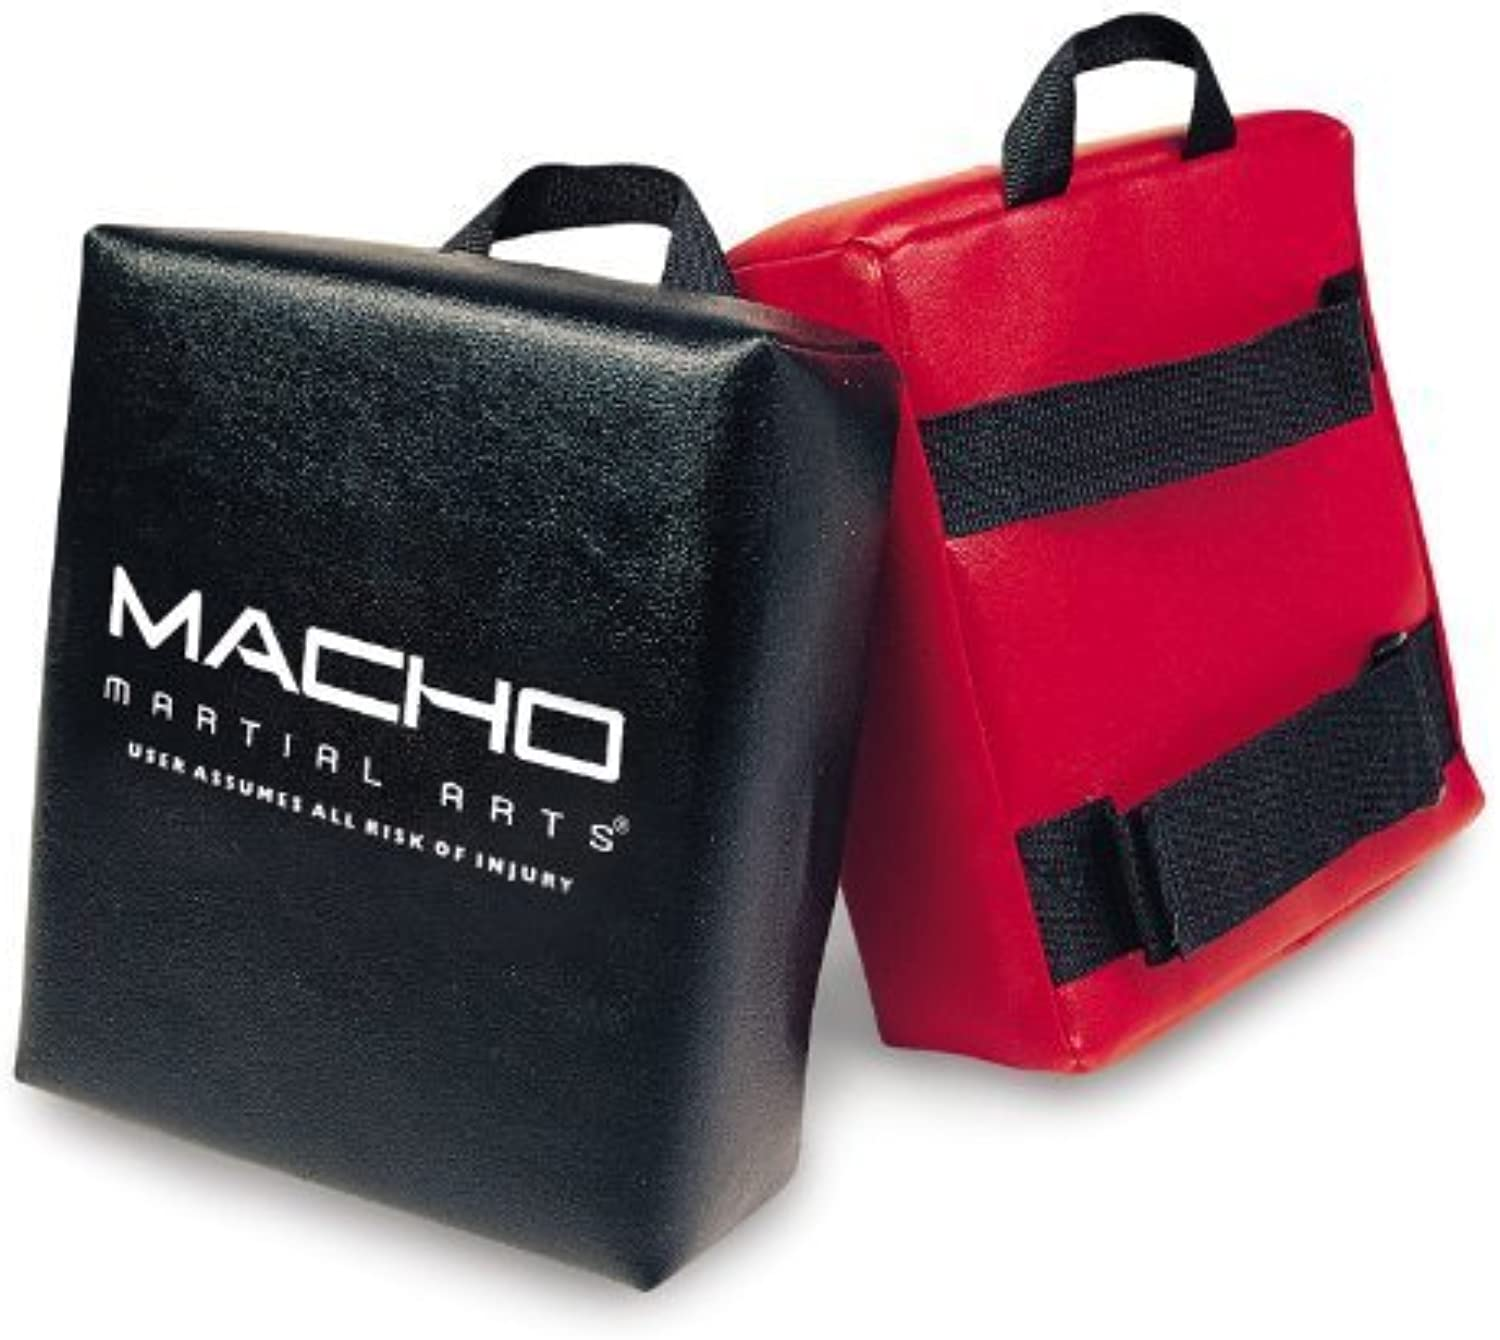 Macho Mini Target (schwarz) by Macho Martial Arts